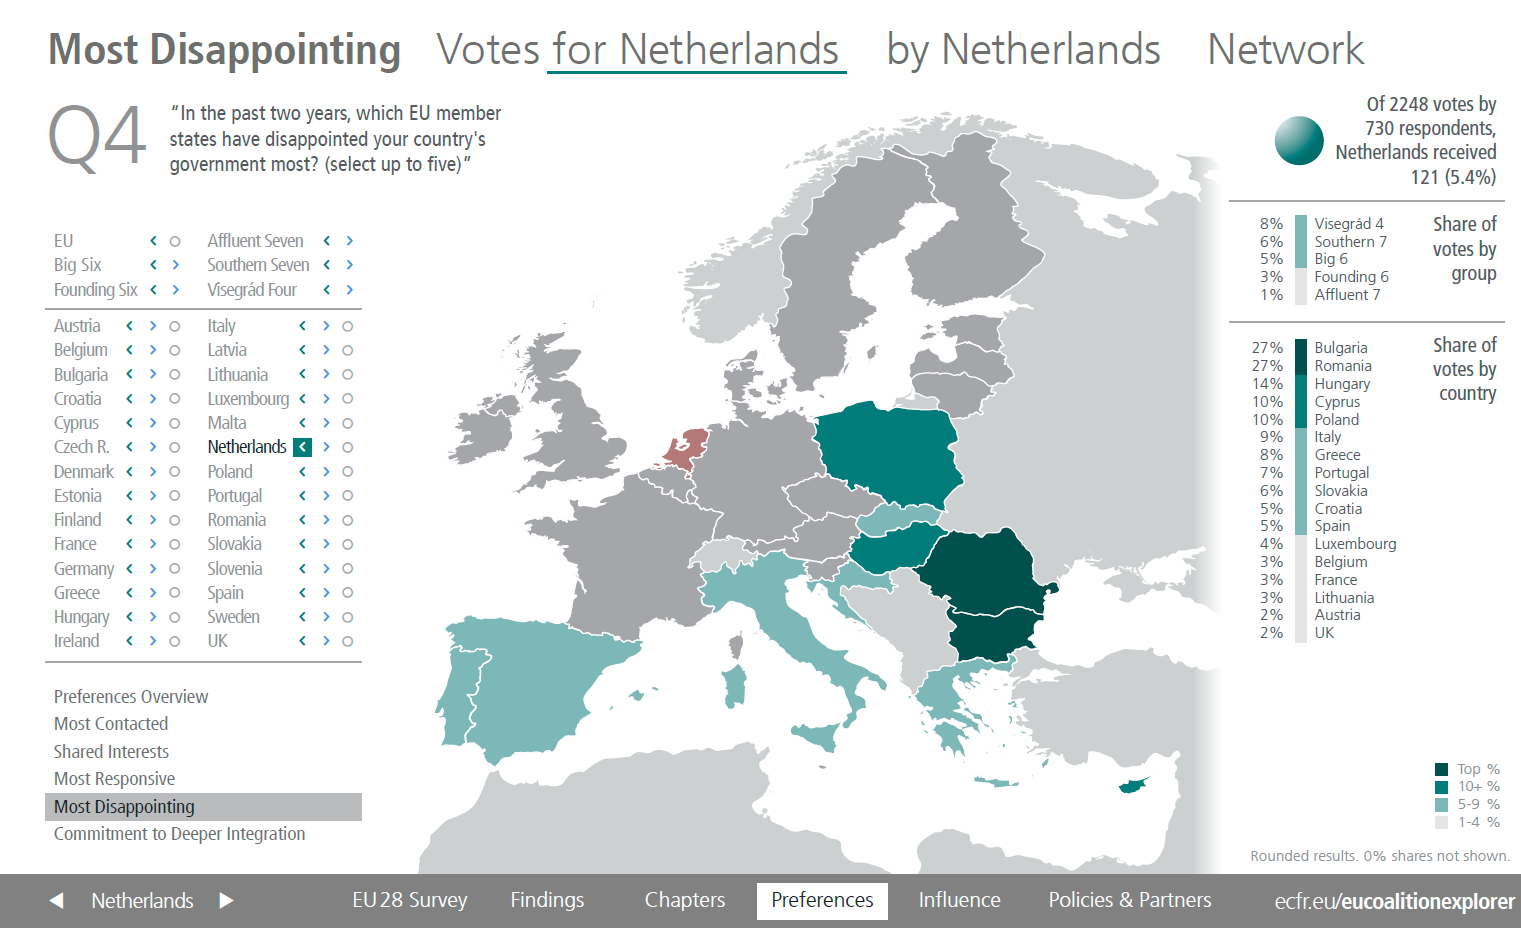 Most disappointing votes for Netherlands